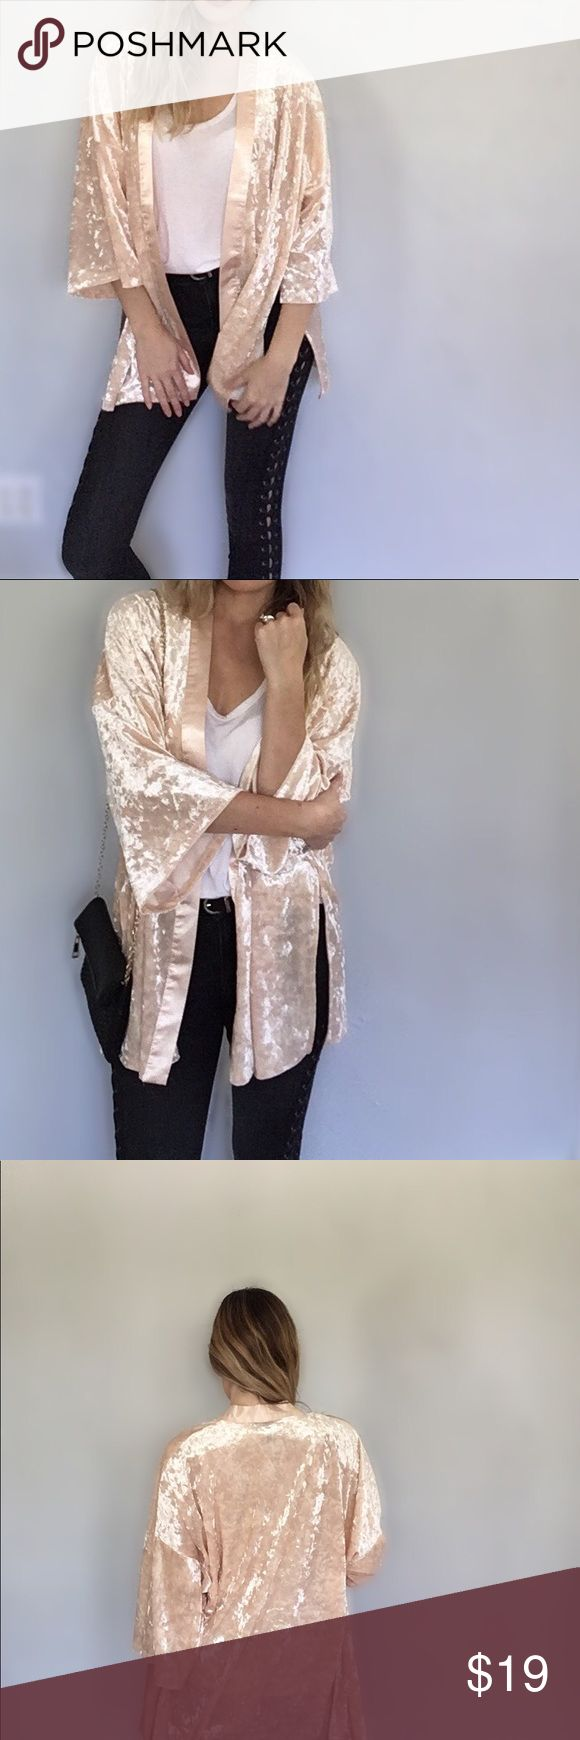 Pink / Peach Velvet Silk Cardigan Like new, worn once. Not actual silk or velvet, but the materials have the same likeness. Please see all photos, close up photos are of color and texture taken in natural light / no filter. Forever 21 Sweaters Cardigans